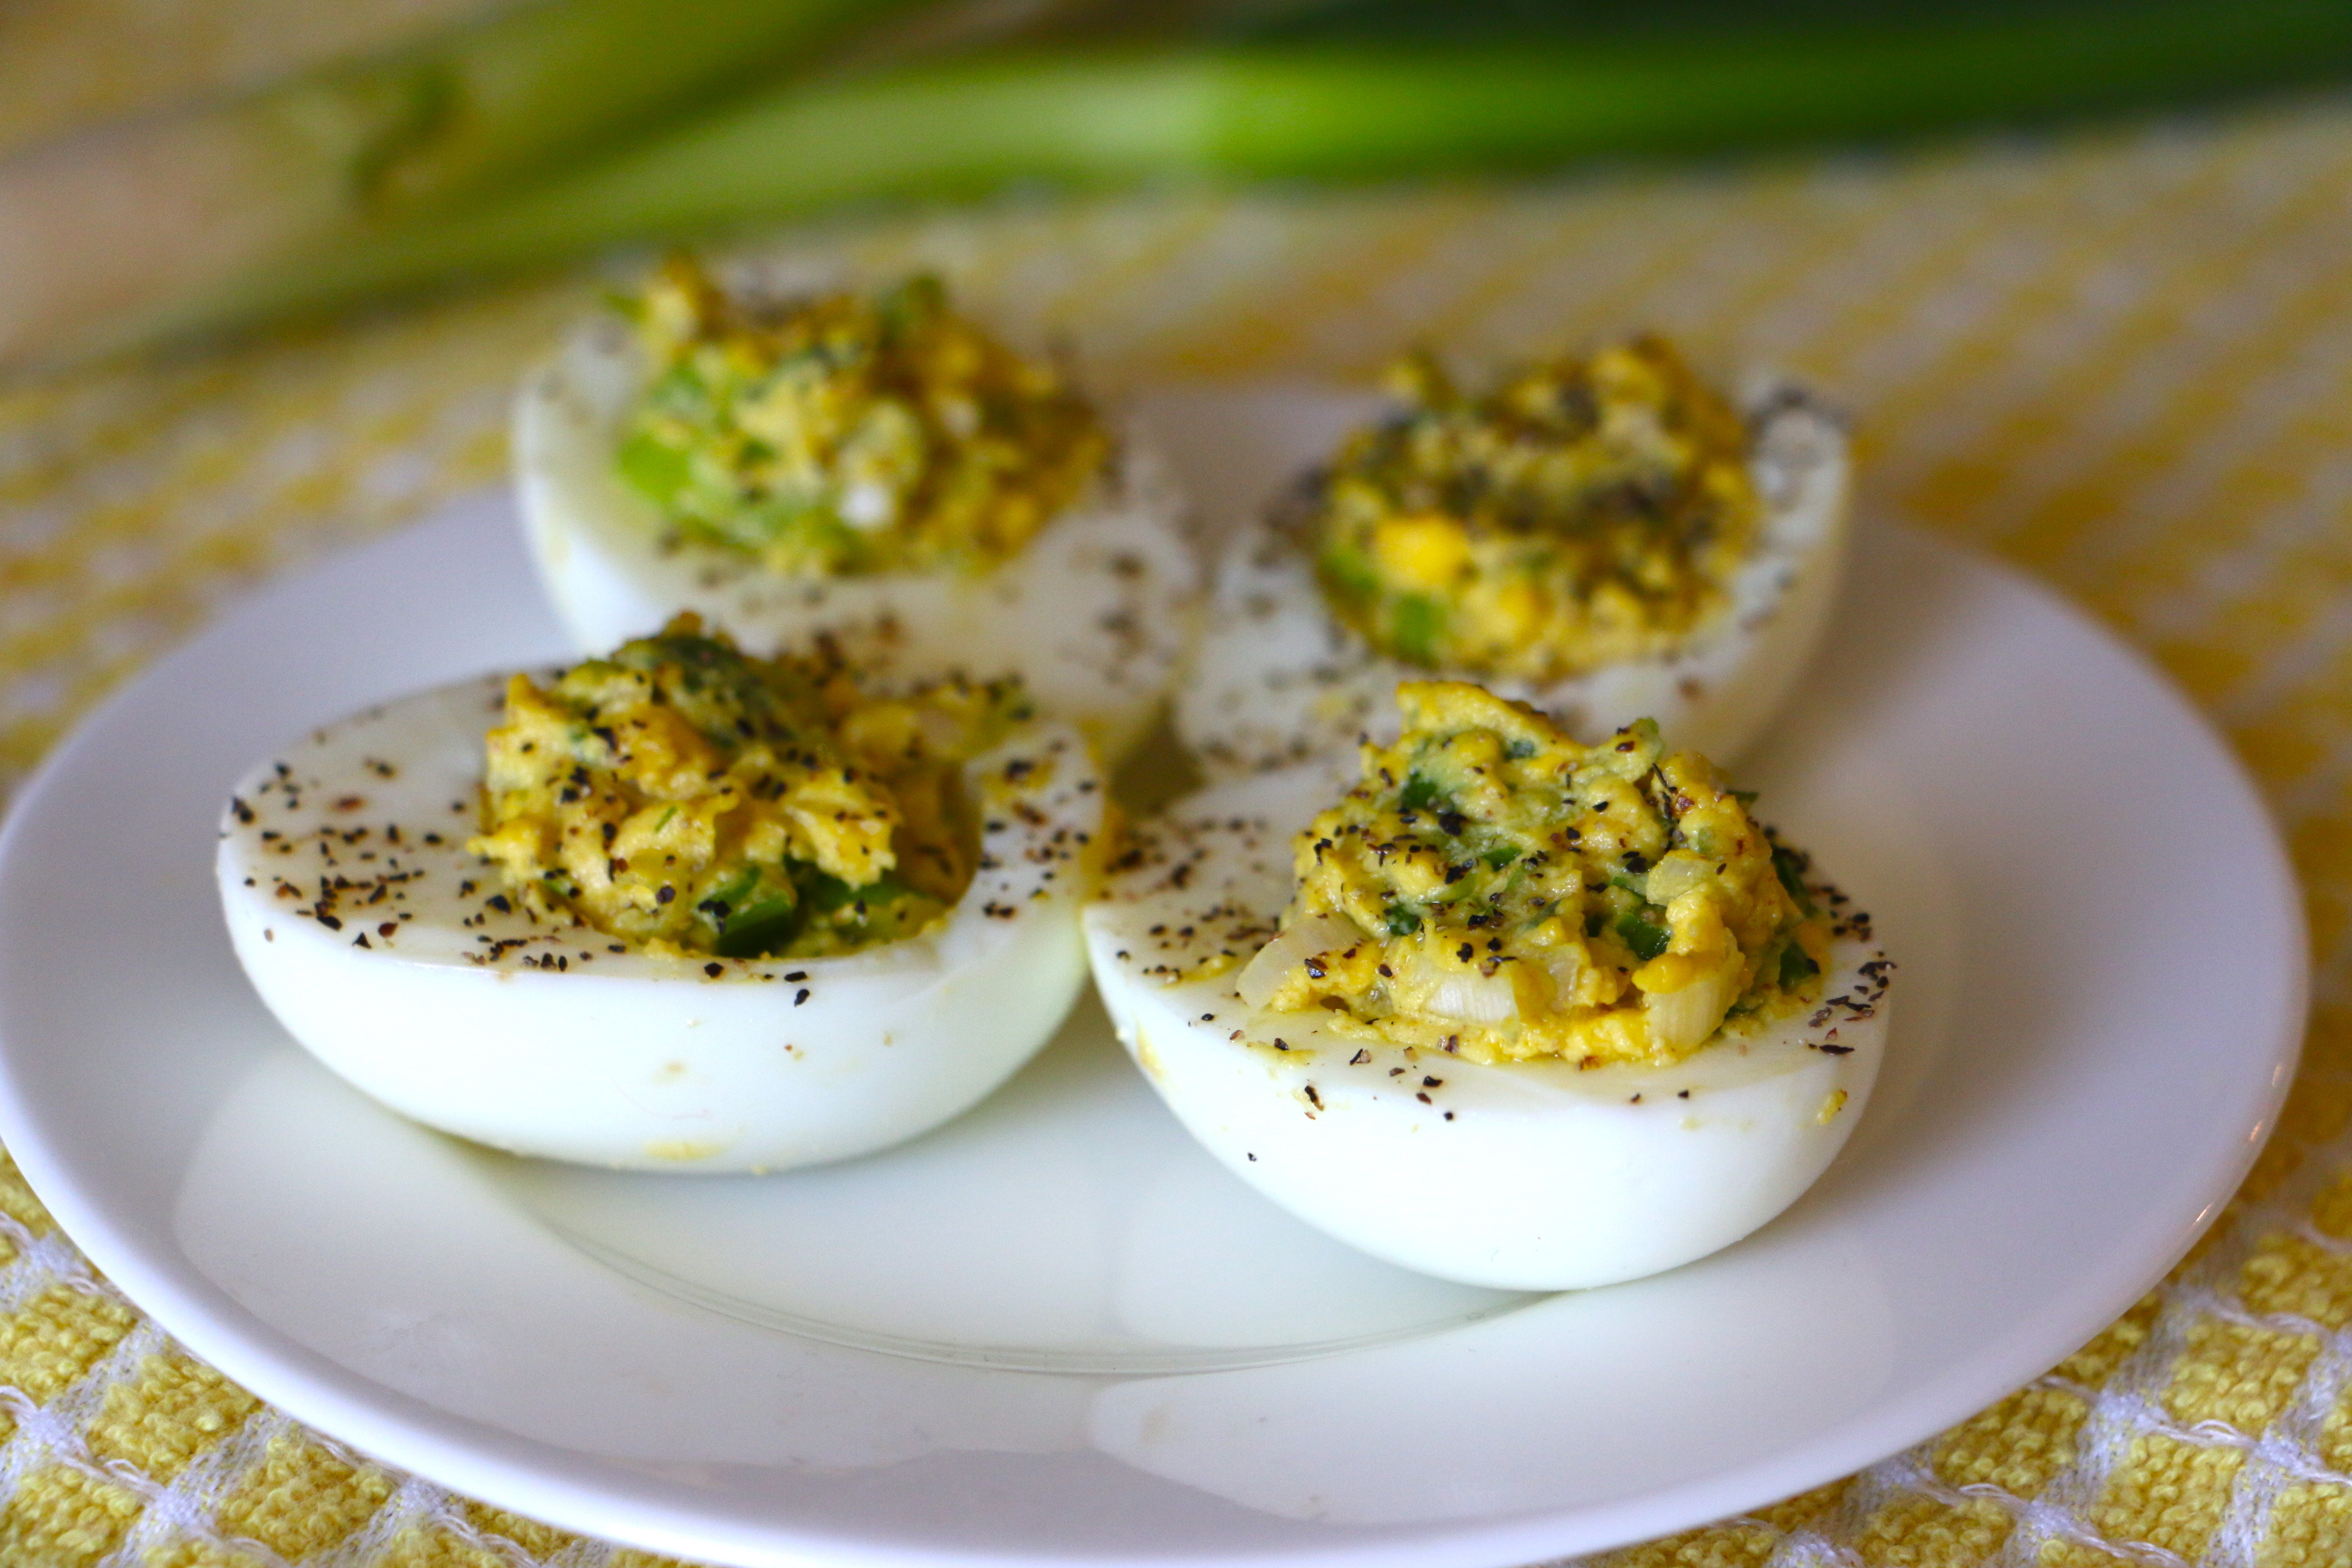 Three Mayo-Free, Healthy Deviled Egg Recipes - Whitney E. RD